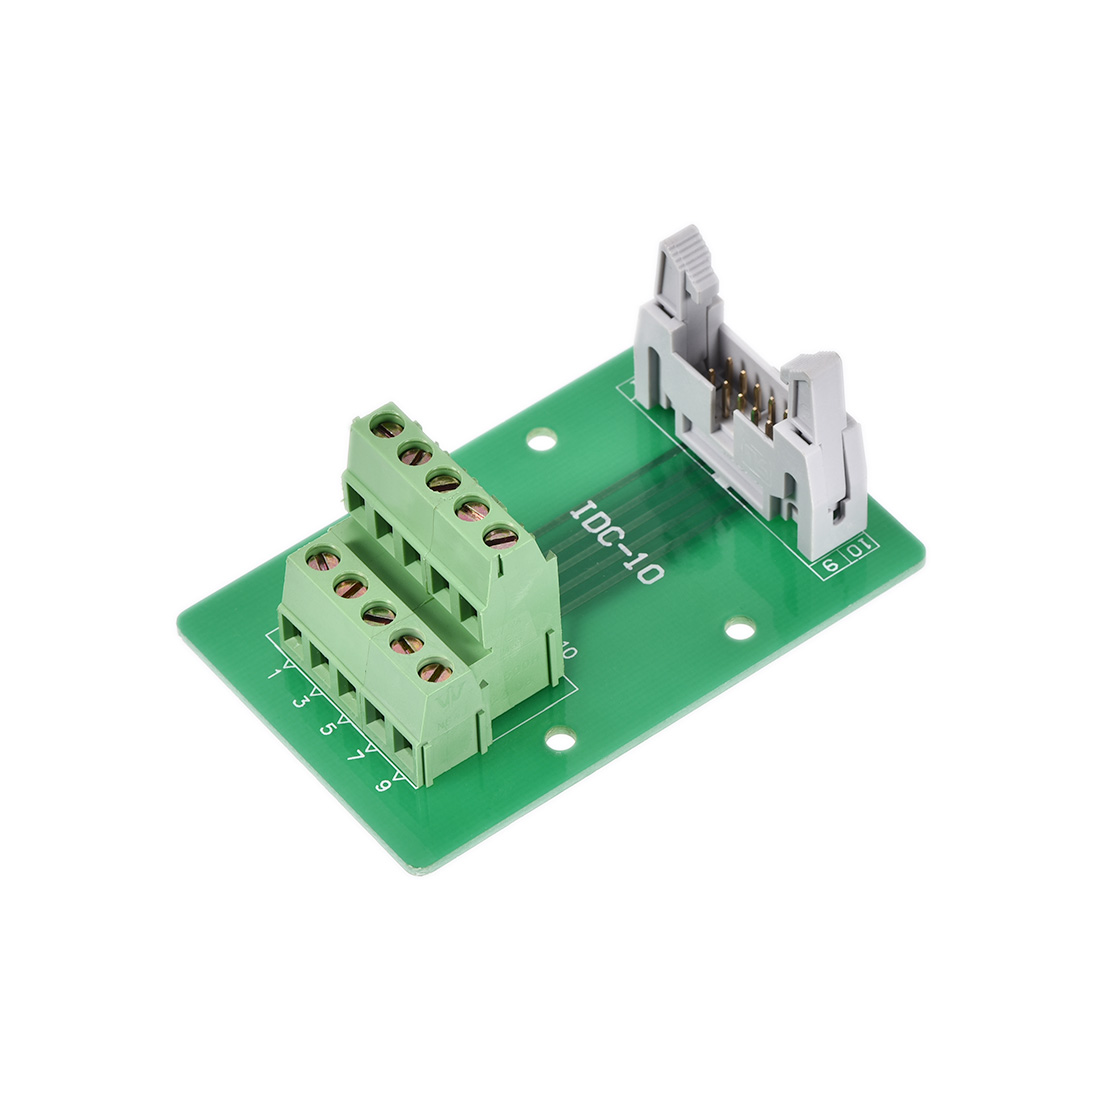 IDC-10 Horns Seat Female 10 Positions Terminal Connector Signal Module Green